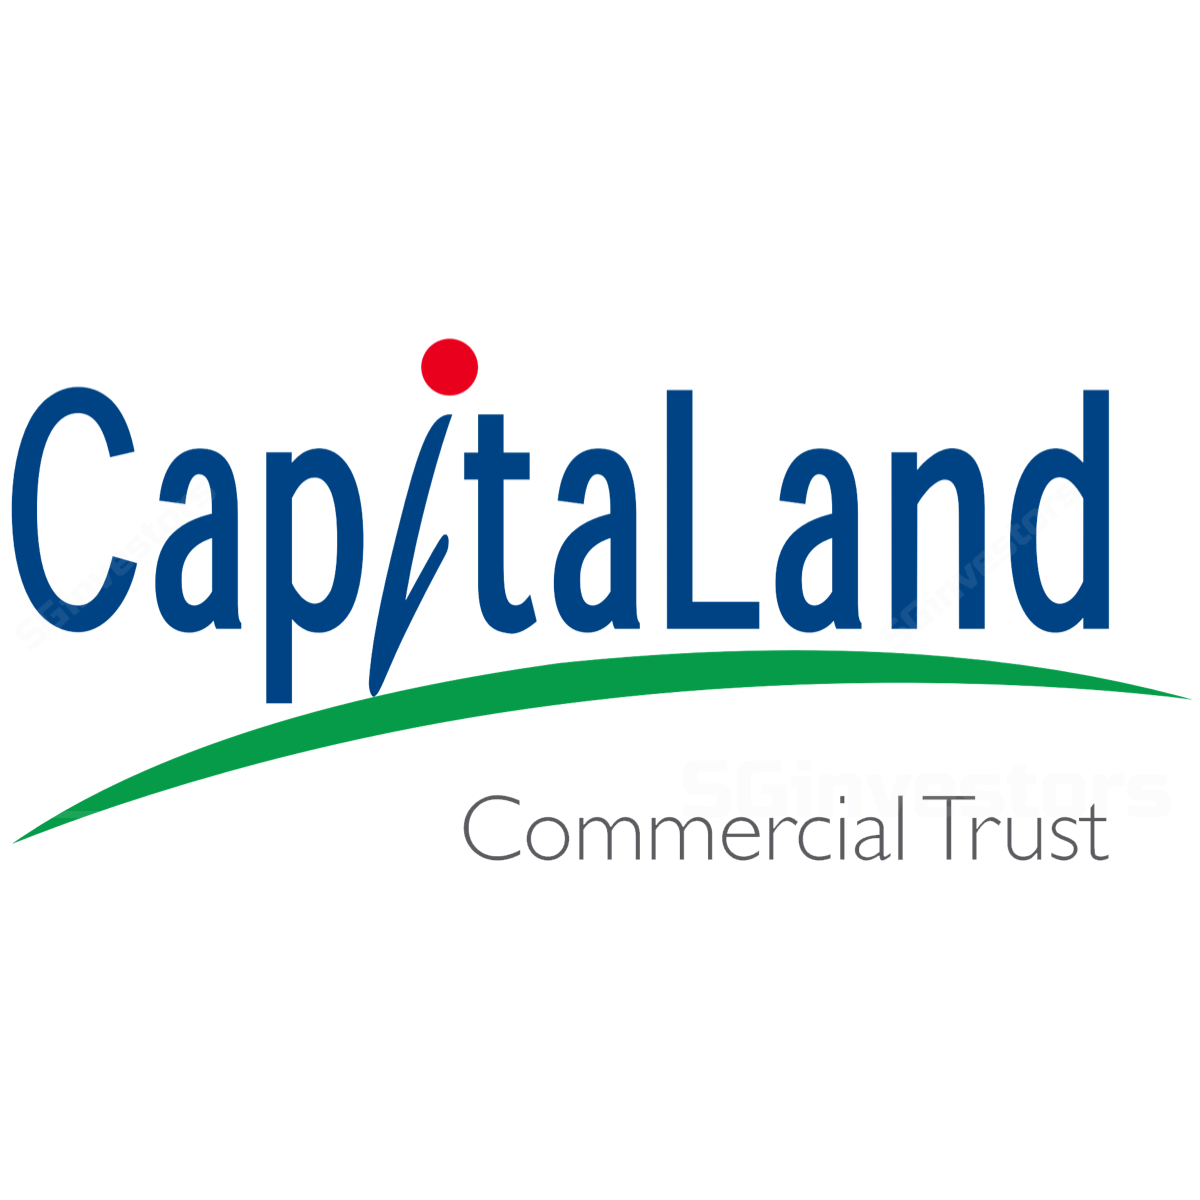 CapitaLand Commercial Trust - RHB Invest 2017-01-13: Catalysts In Place To Overcome Near-Term Headwinds